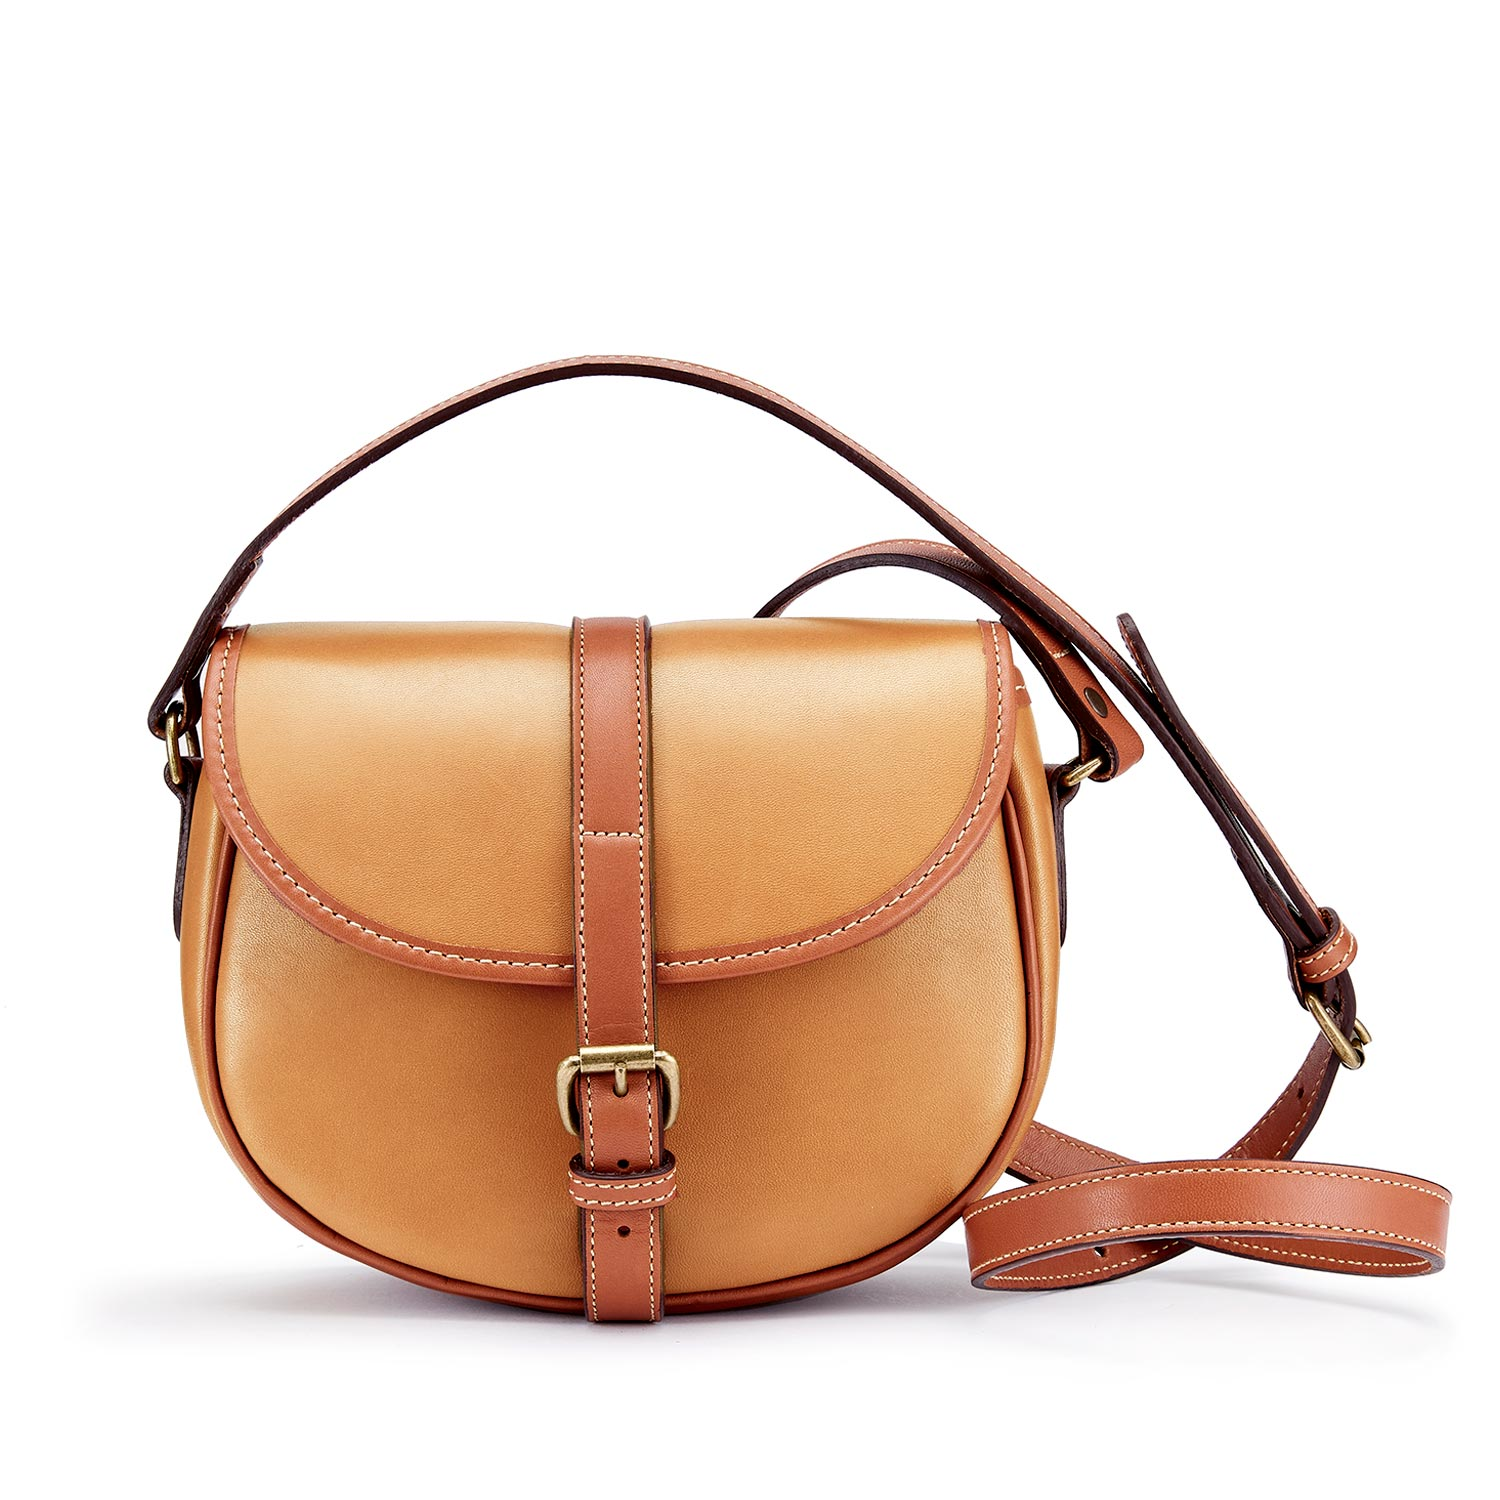 Cardington Crossbody Tan Leather Handbag (medium) made in england by Tusting